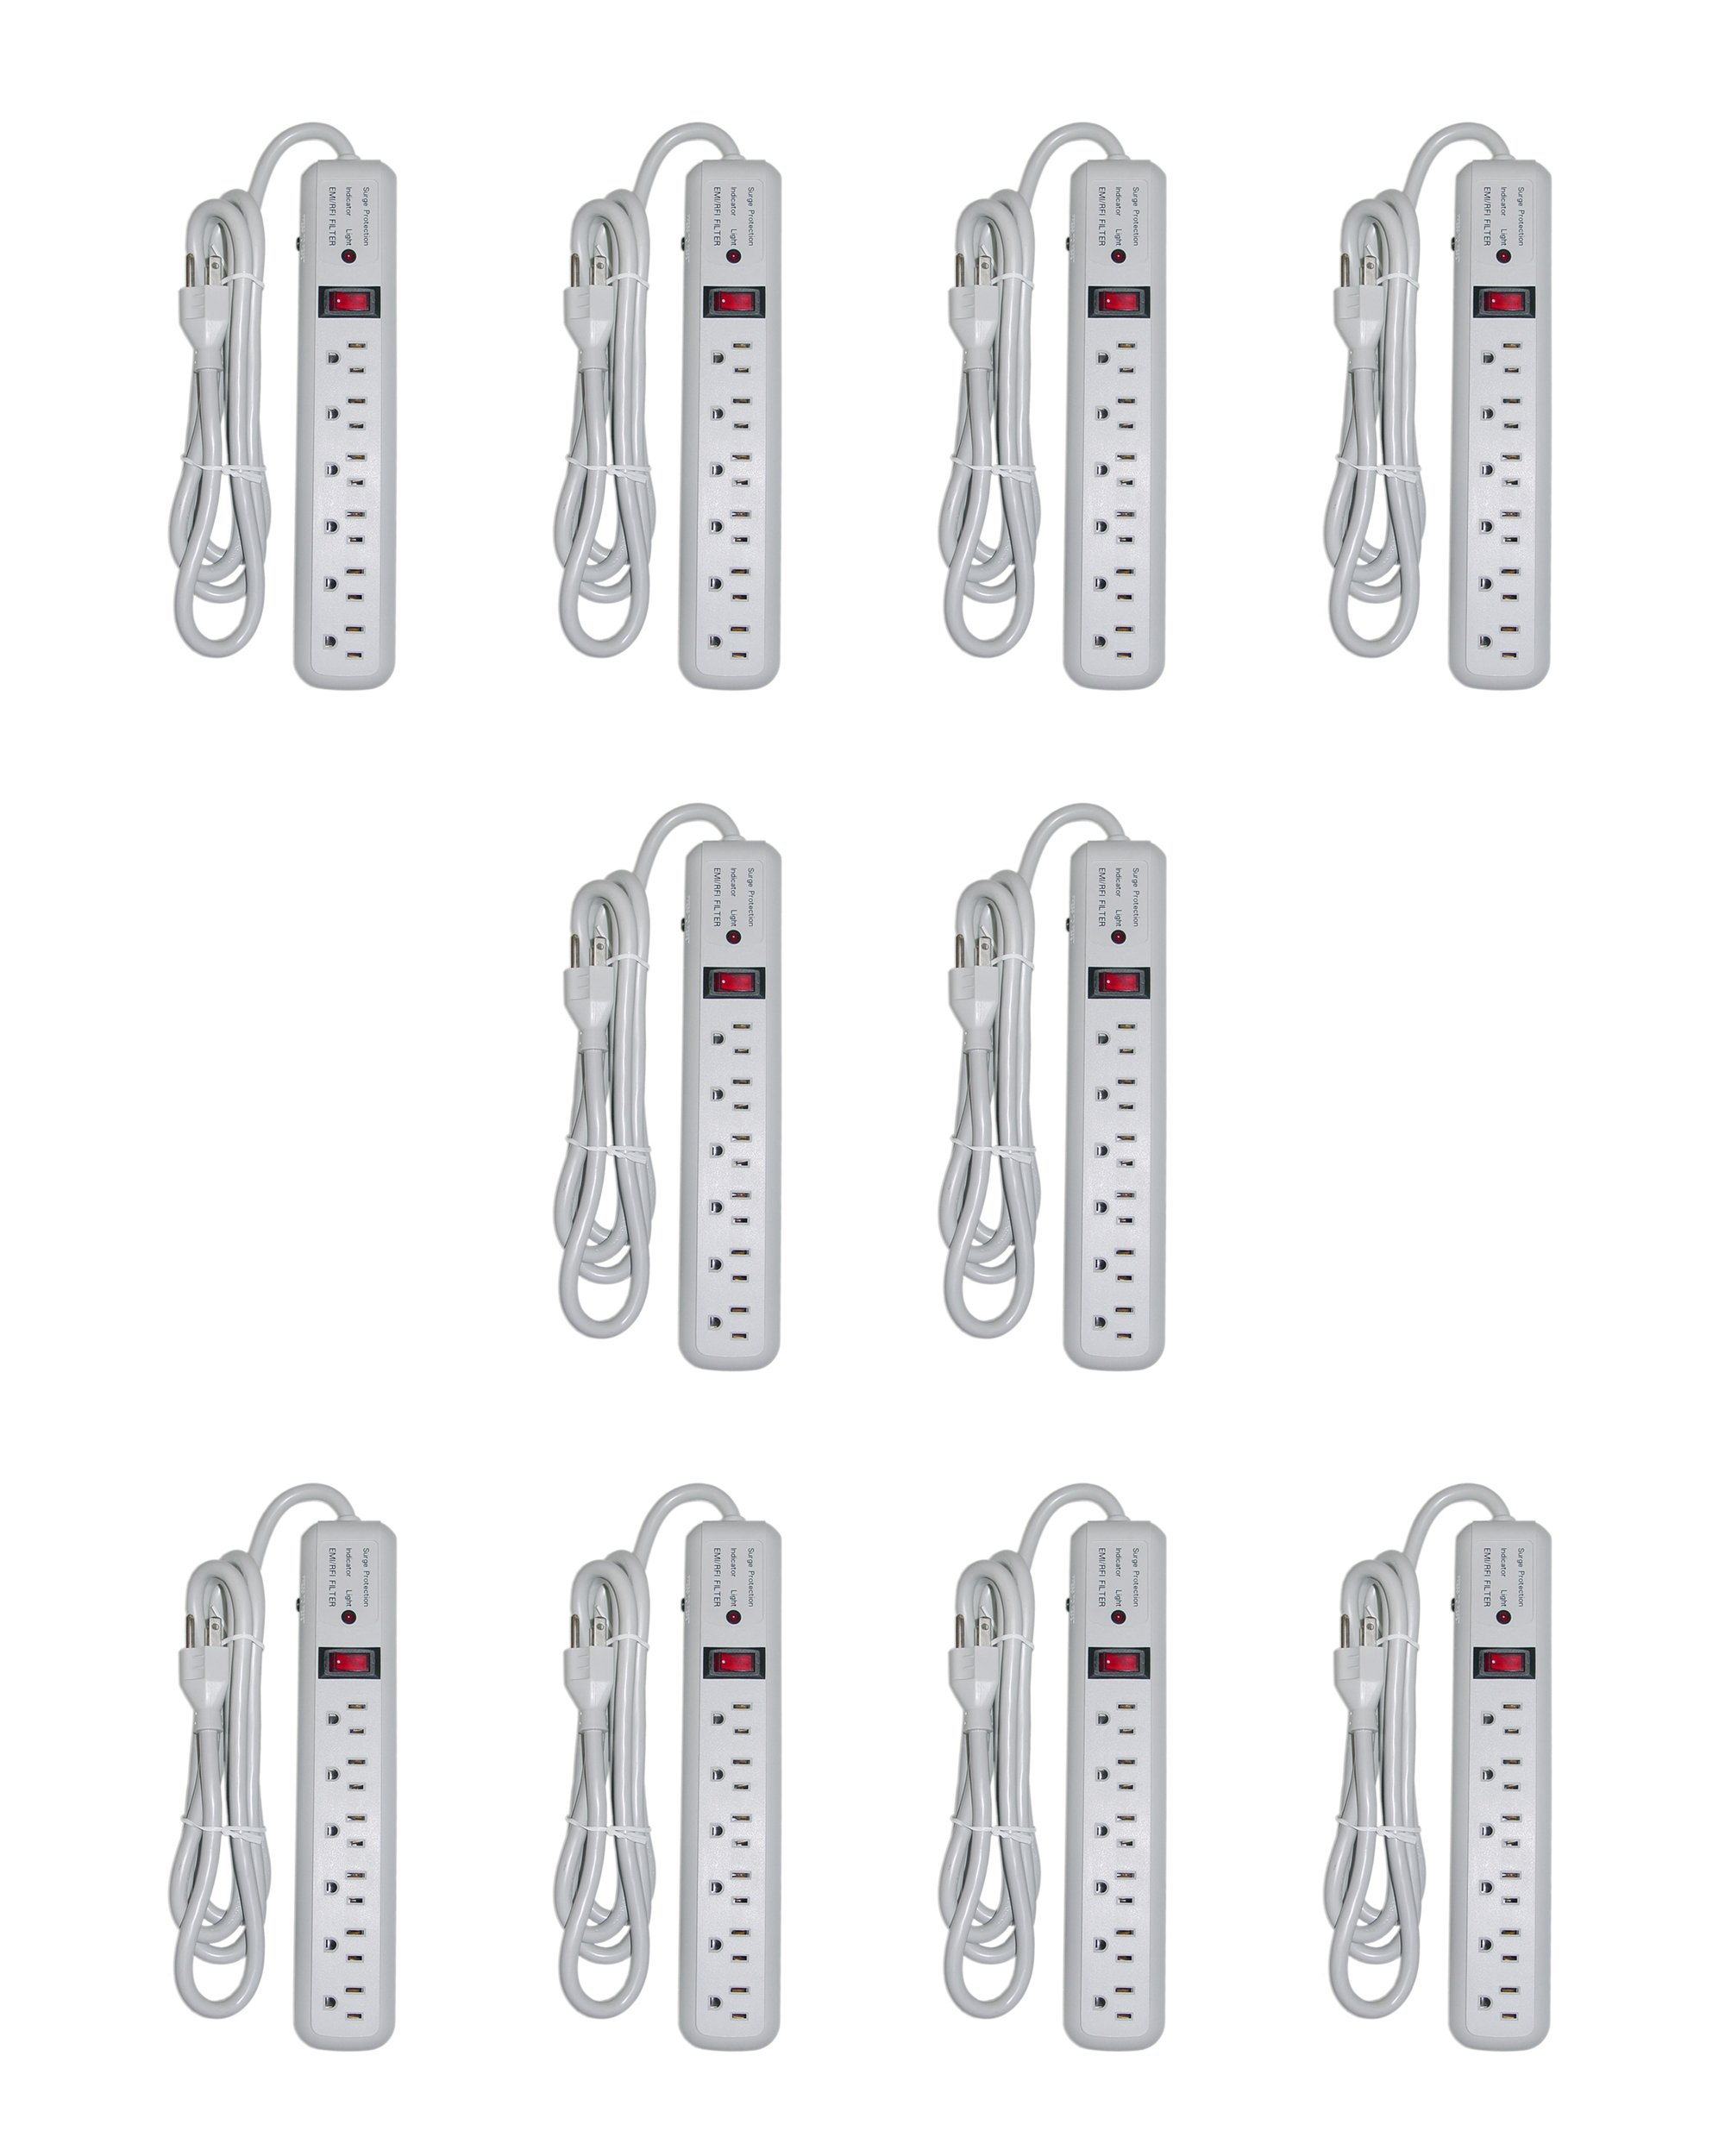 C&E 6-Foot 6-Outlet 3 MOV 540-Joules EMI/RFI Power Chord with Surge Protector, Gray, 10-Pack (CNE23855)